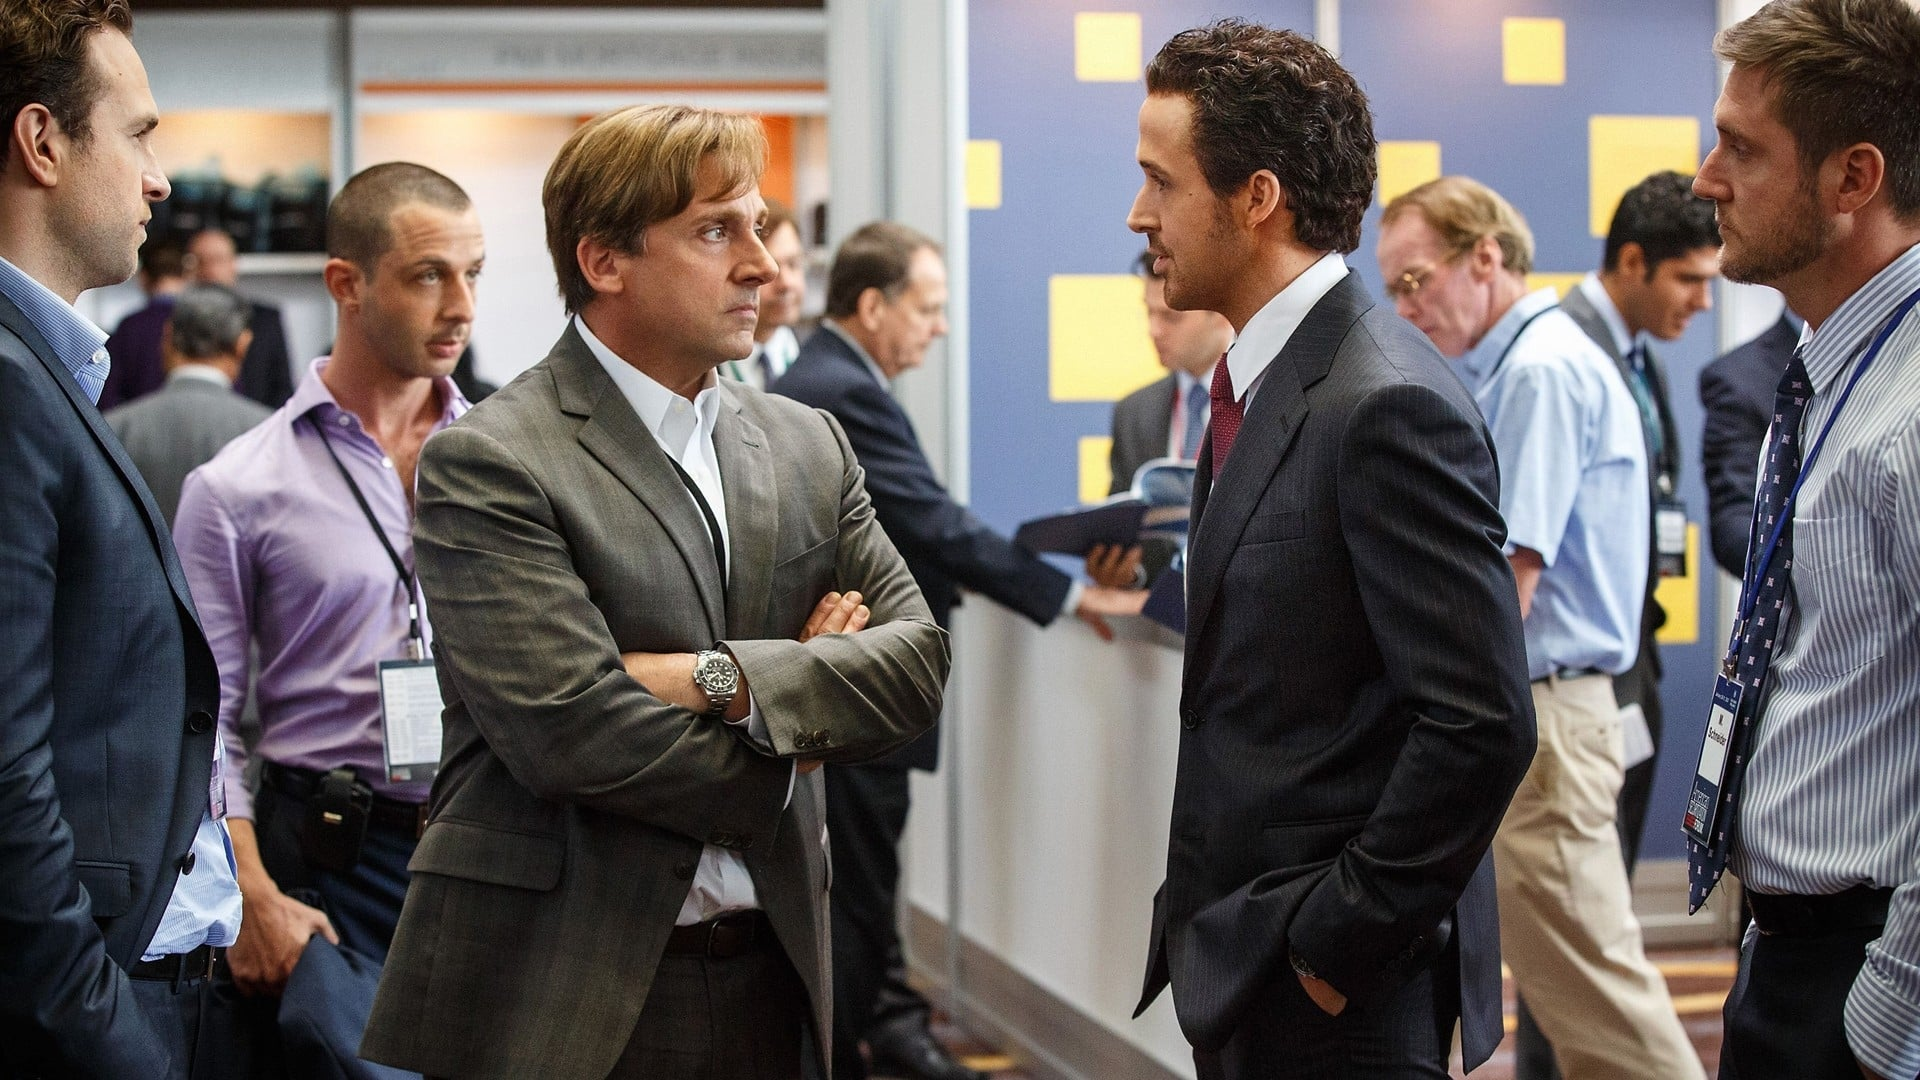 Finance Movies for Fans of The Big Short